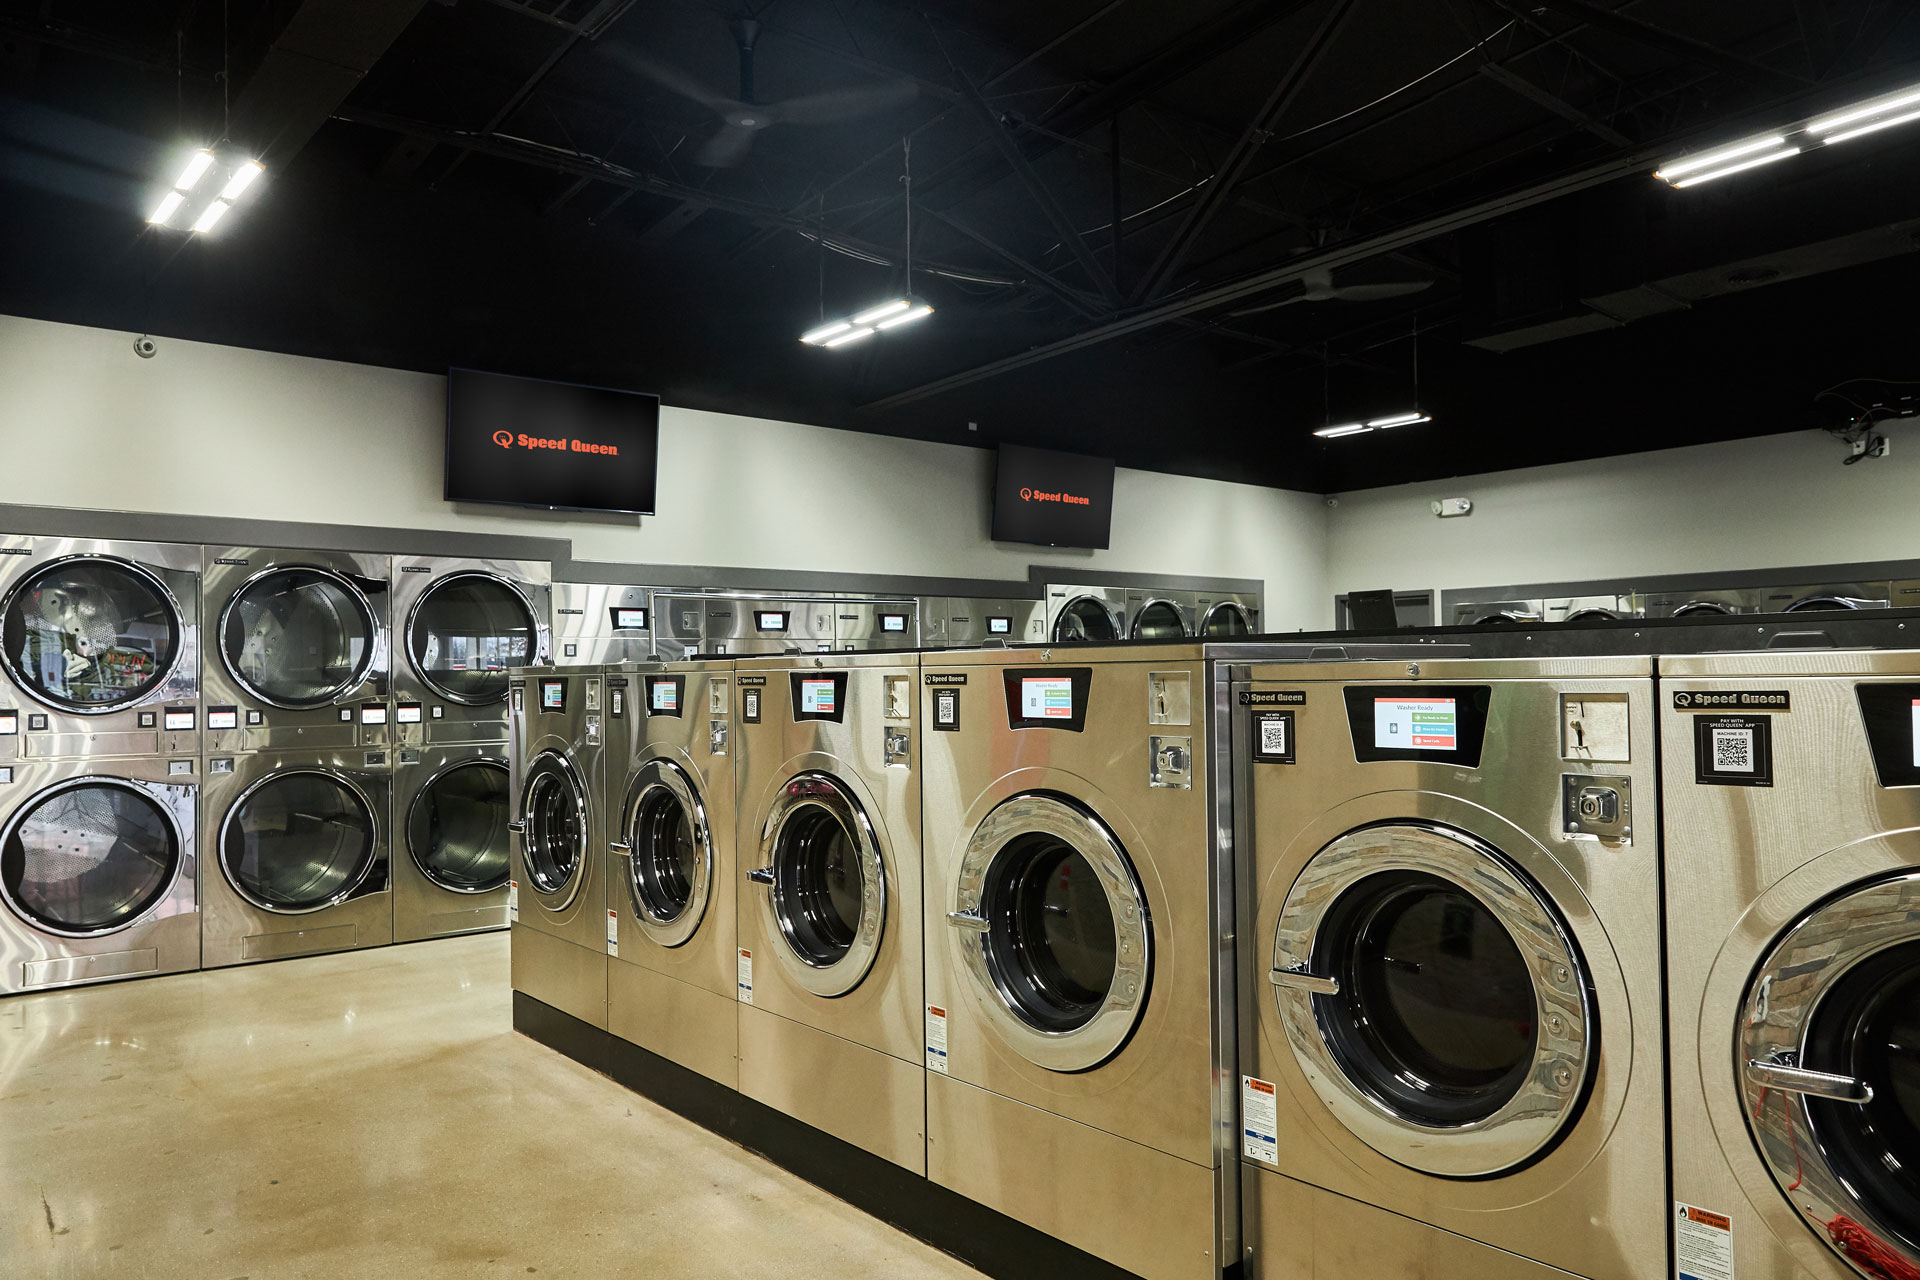 Speed Queen Laundry Franchise Exec Talks About the Trend Toward Larger Laundromats